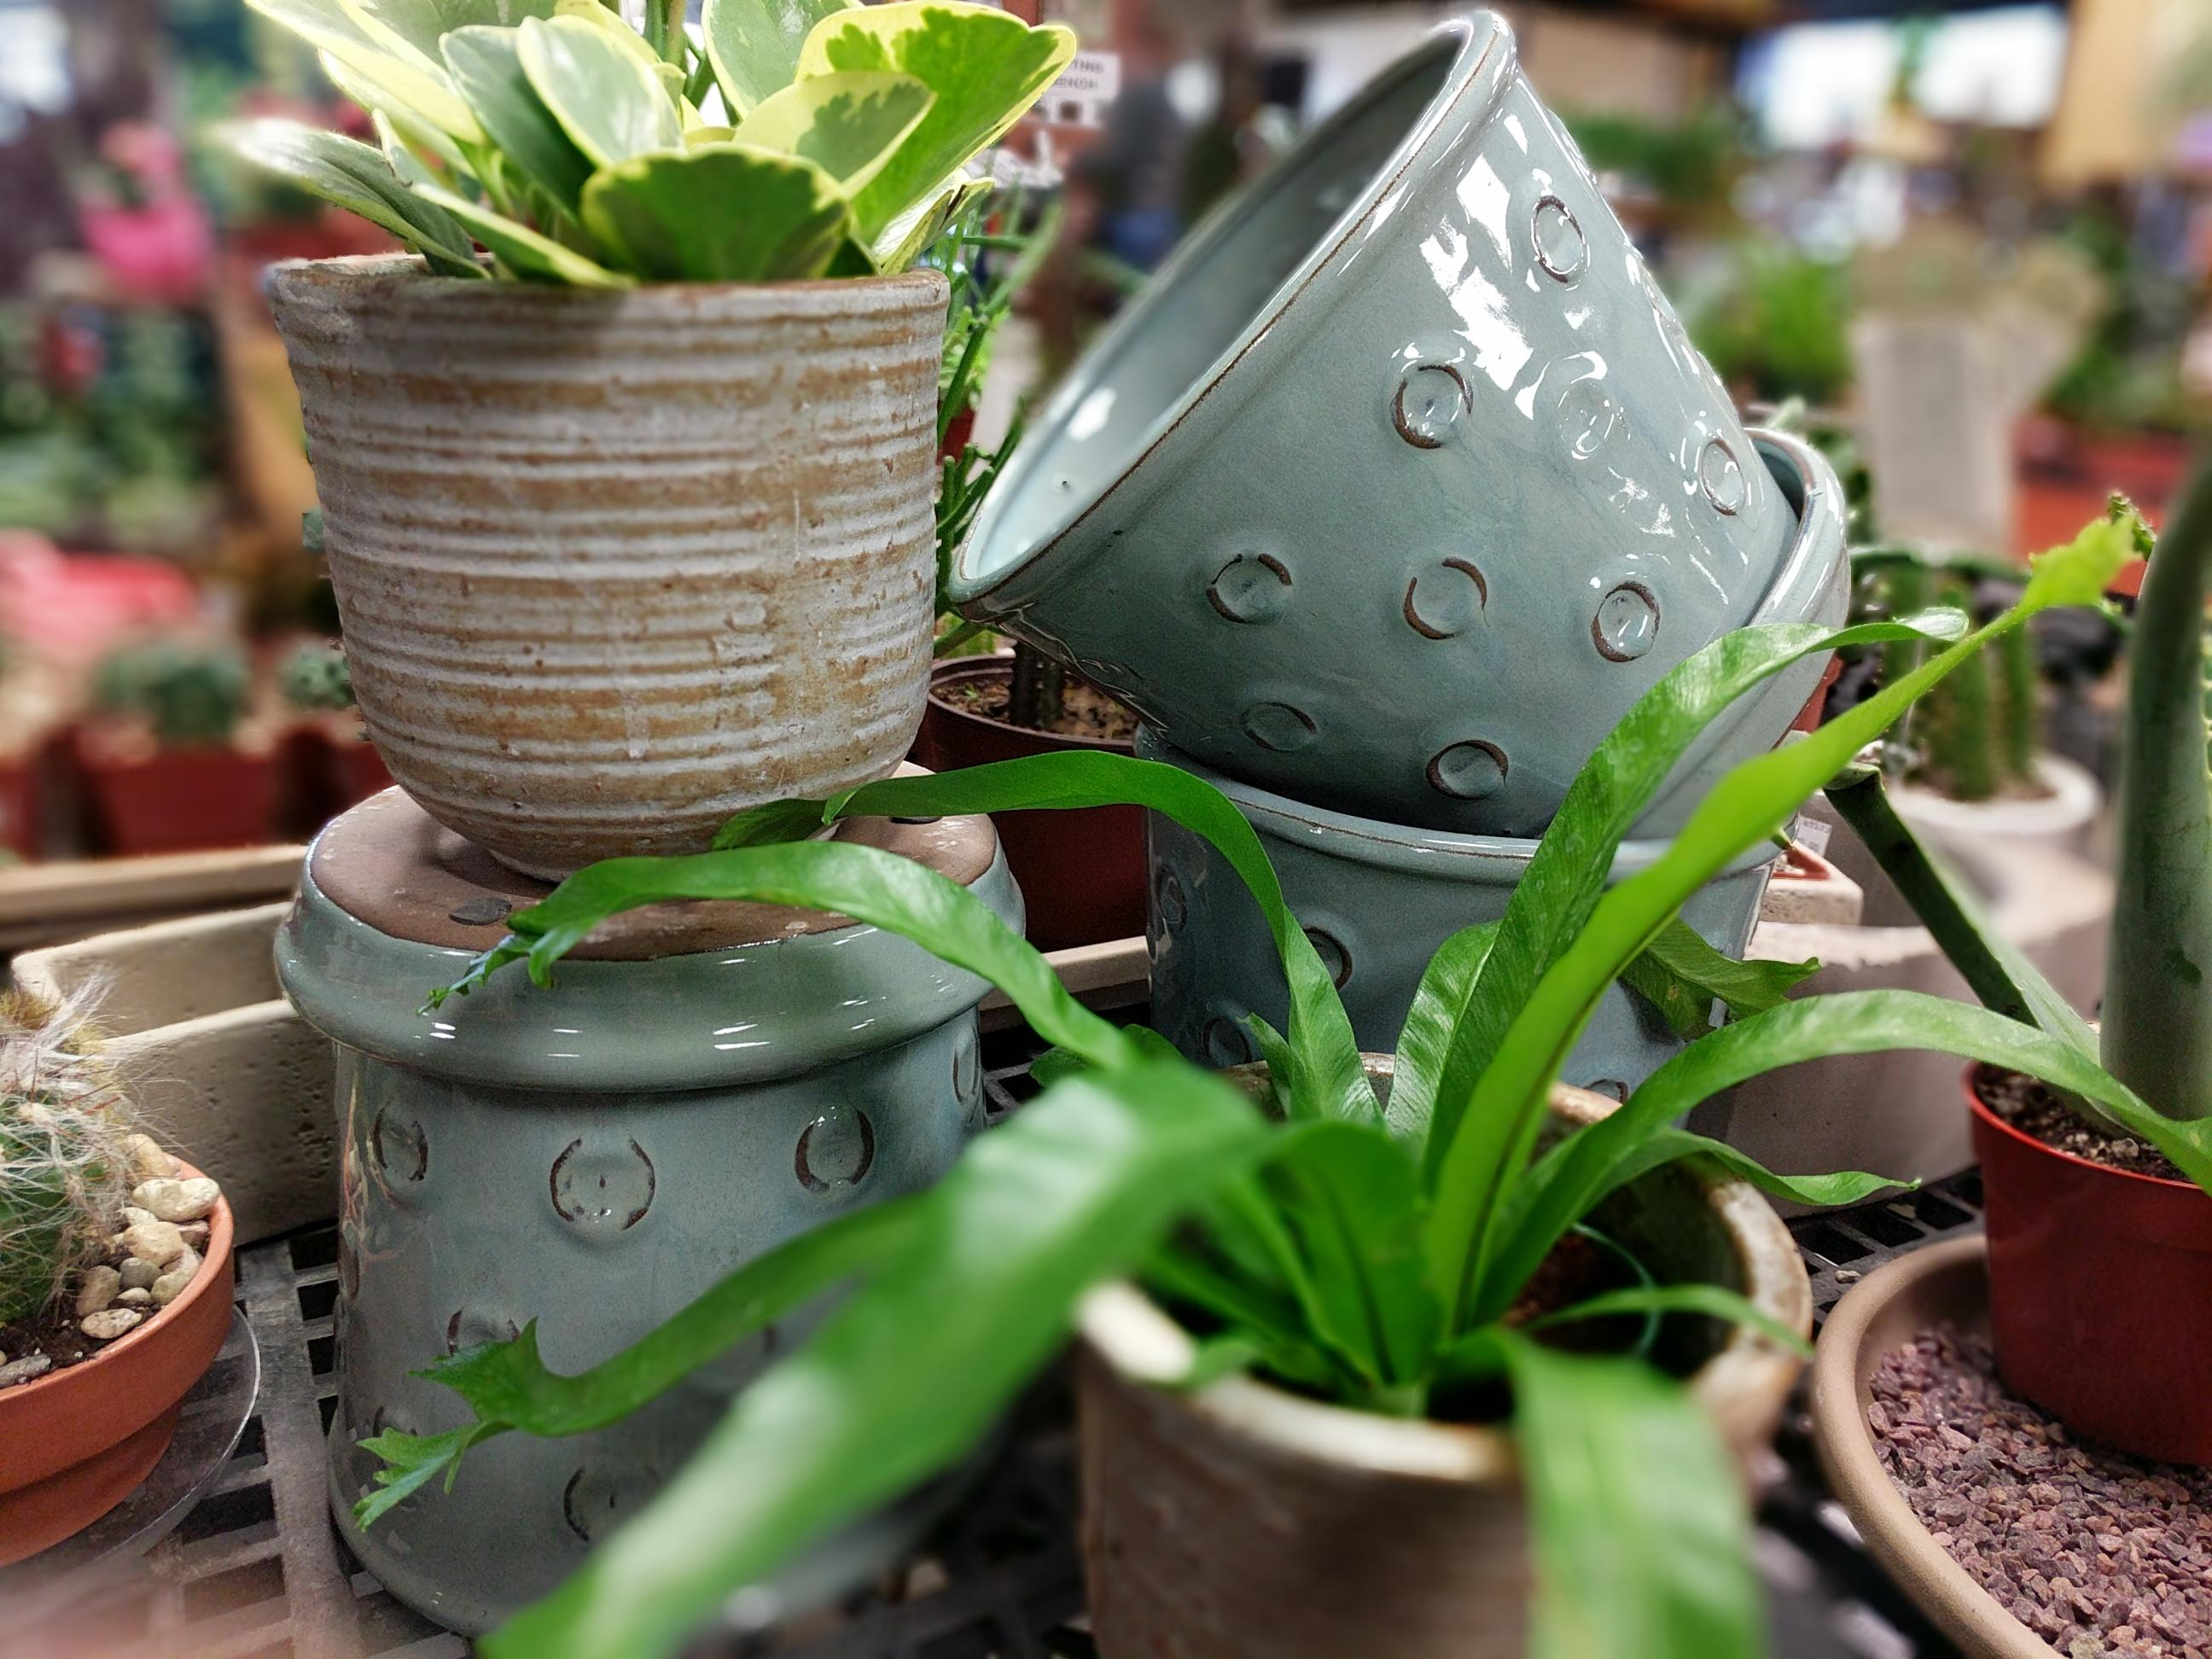 ceramic pottery with plants